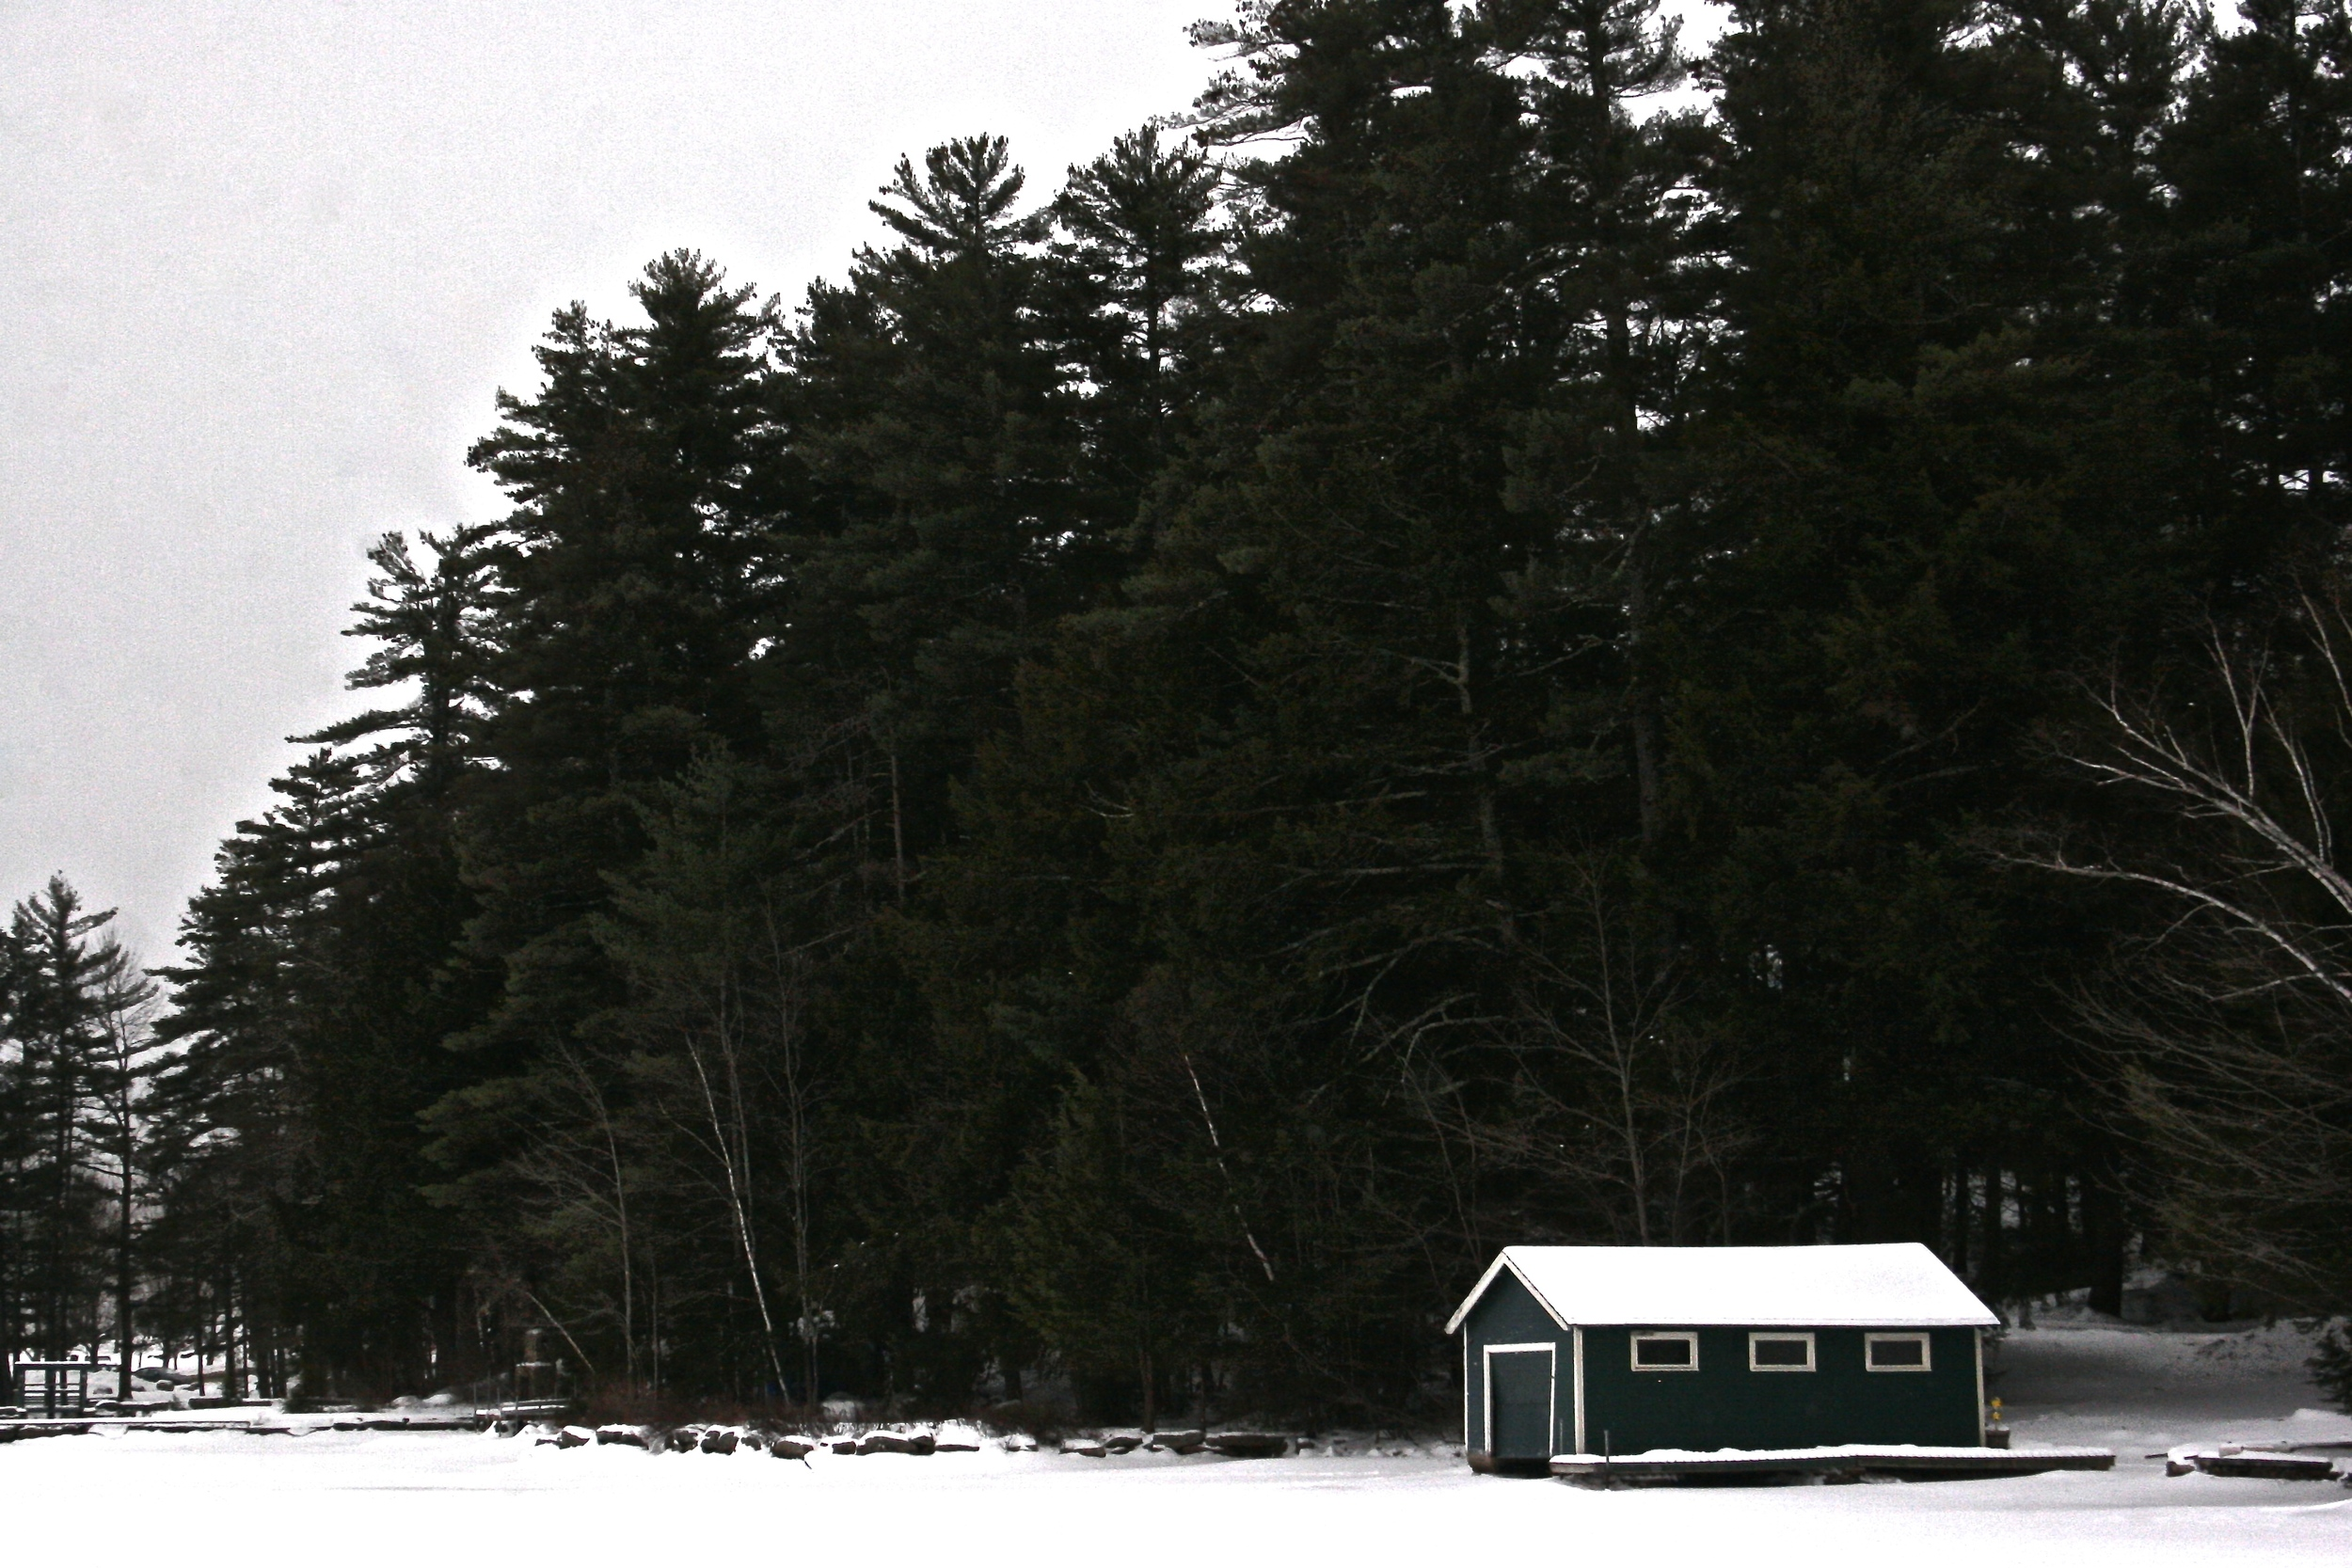 boat-shed-on-frozen-lake-bridgton-maine.jpg